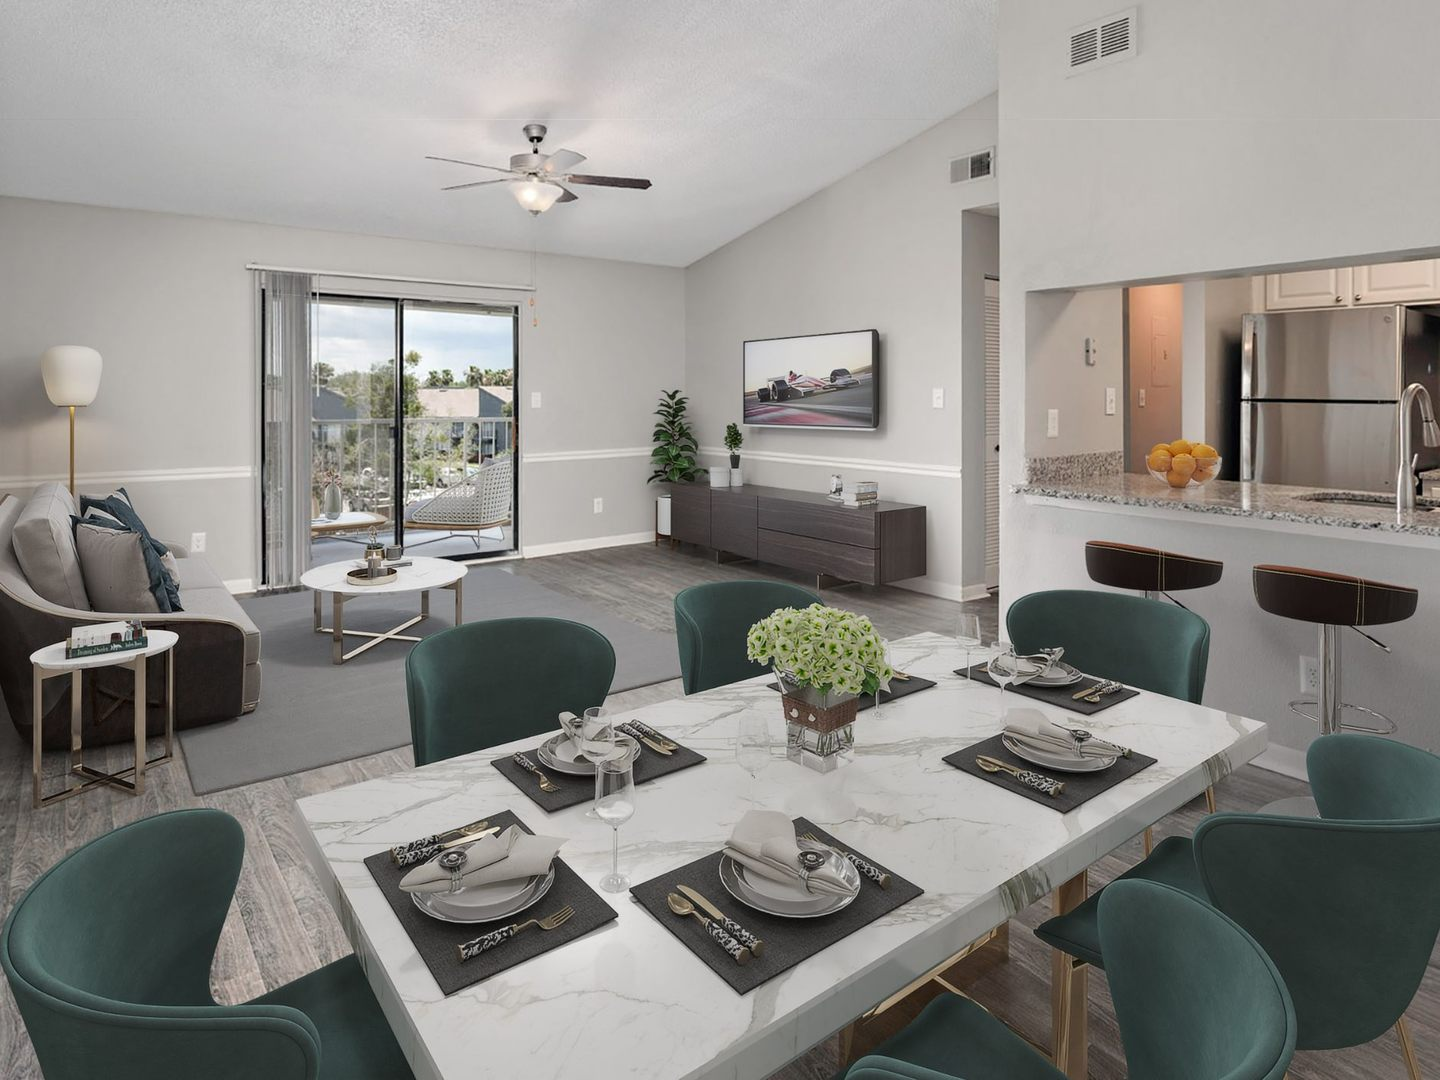 Apartment dining area with view of living area